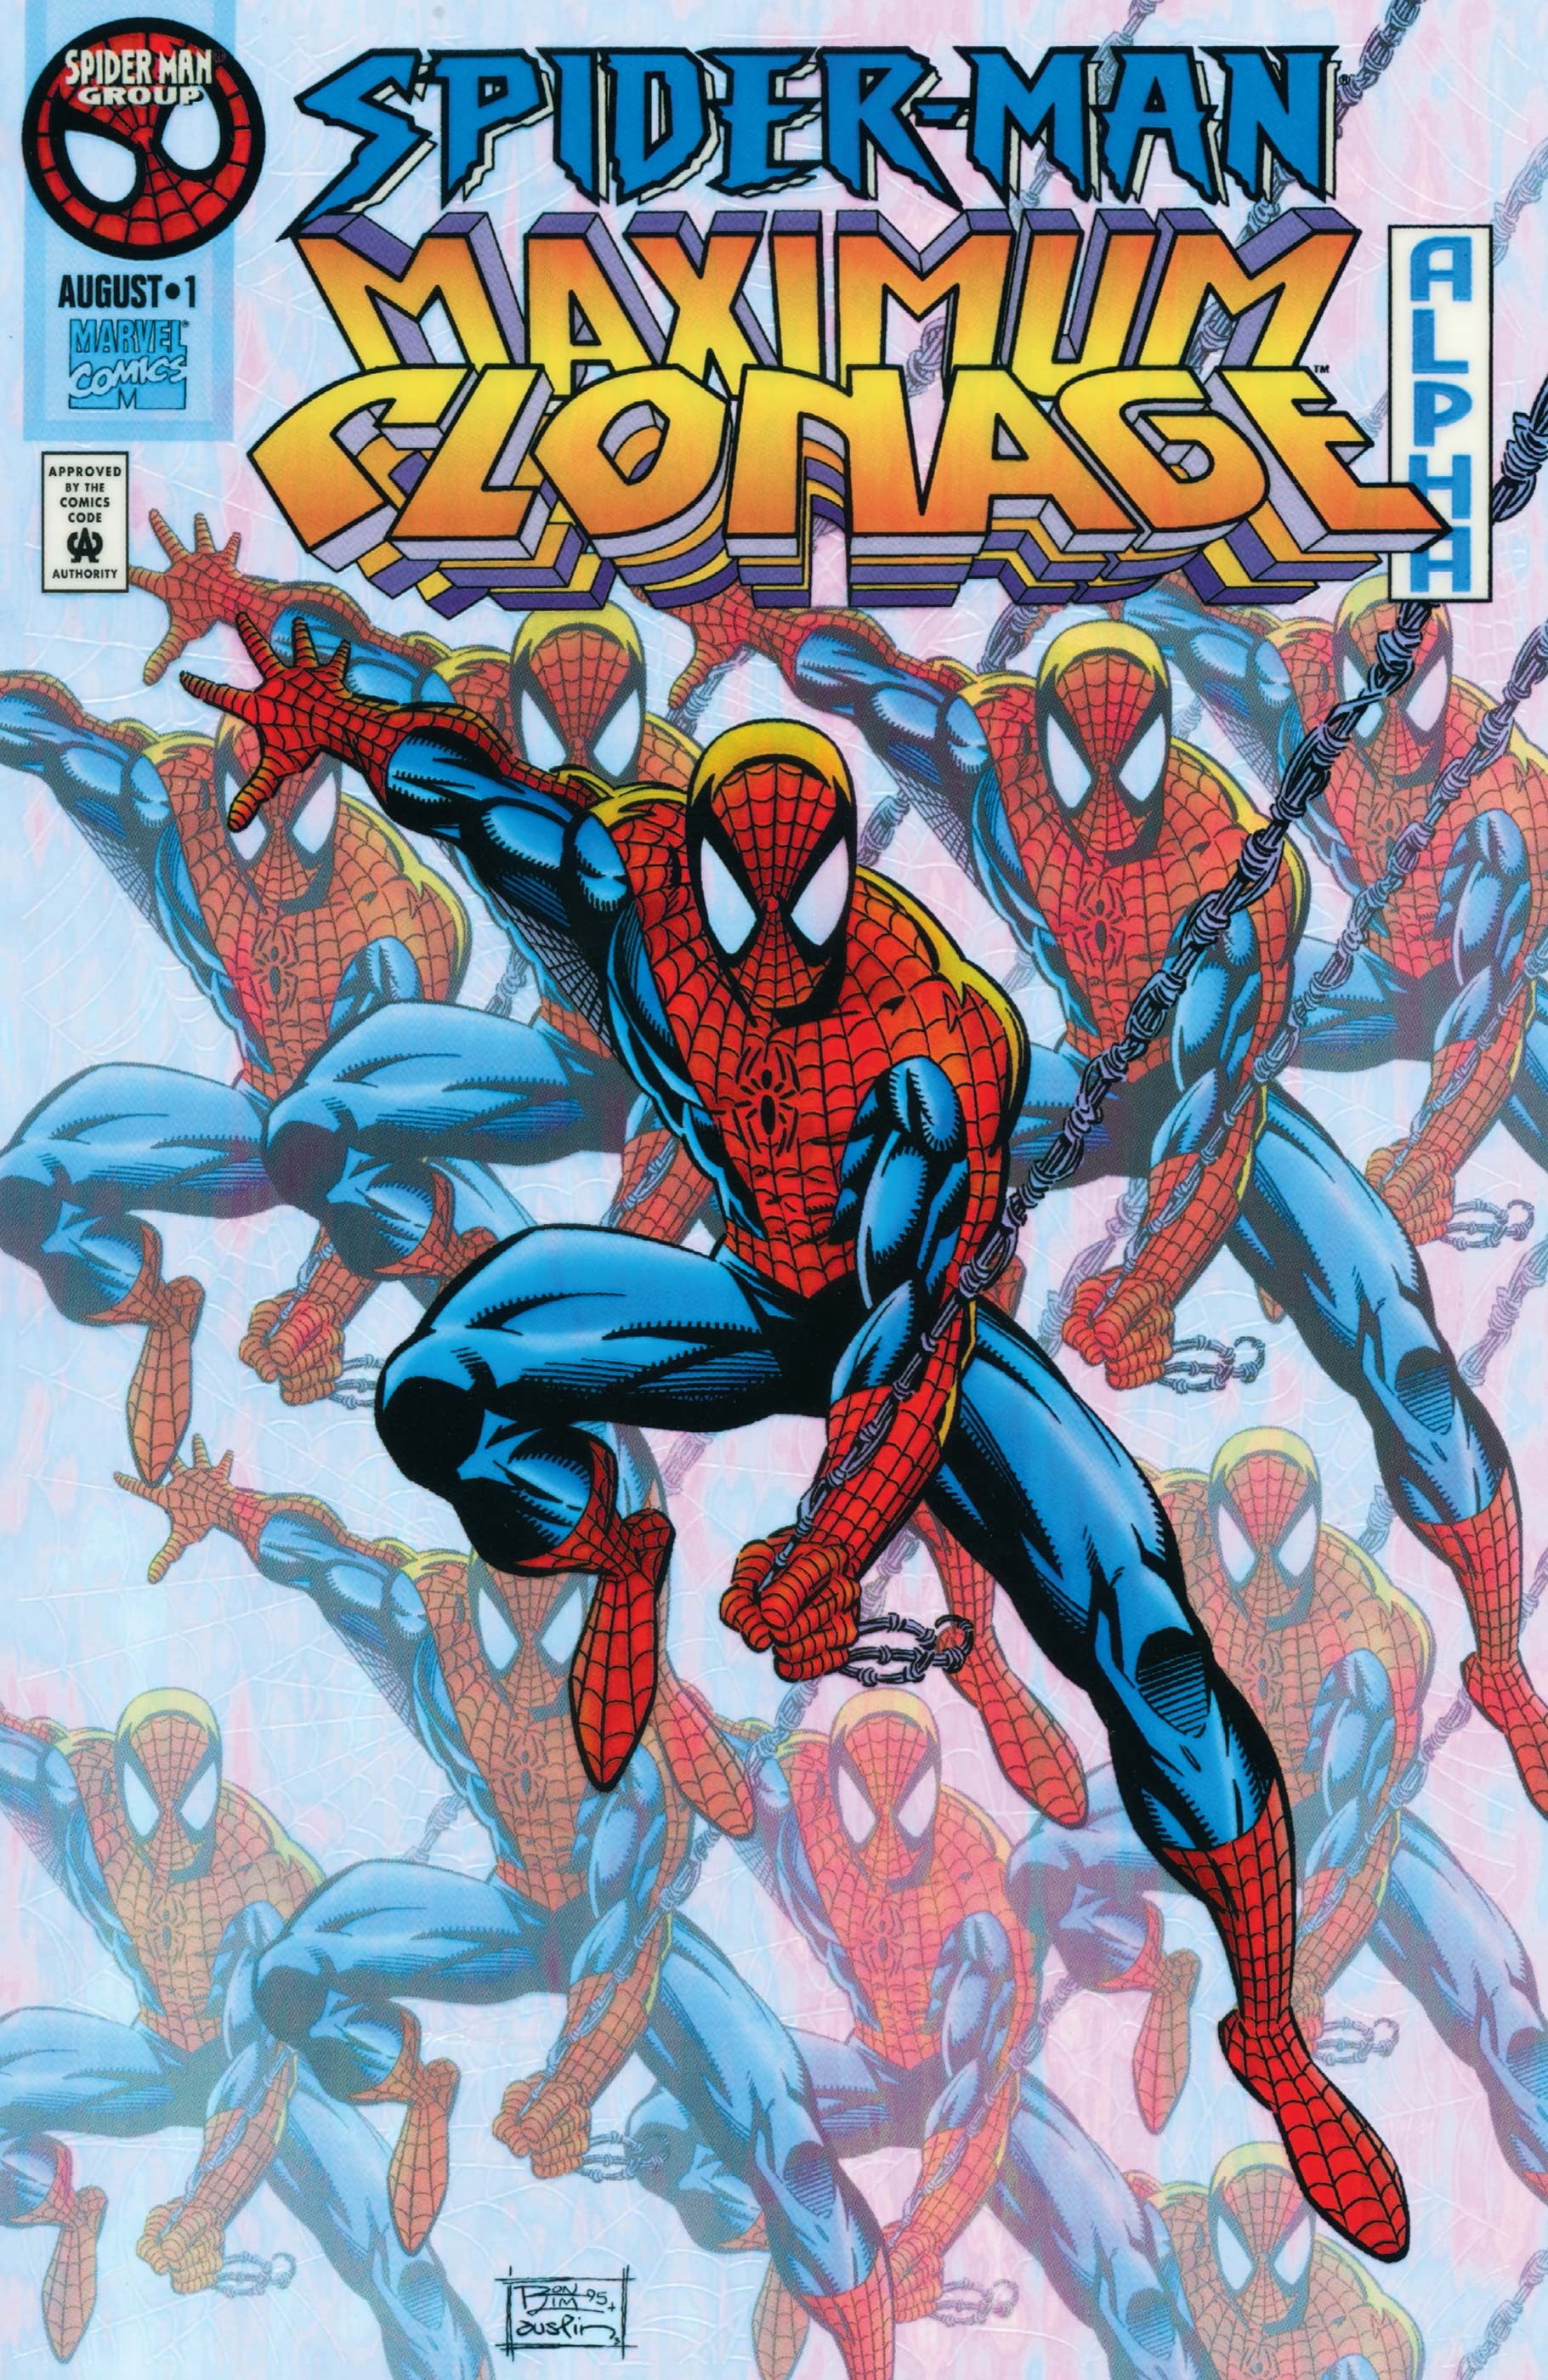 Spider-Man: Maximum Clonage Vol 1 Alpha